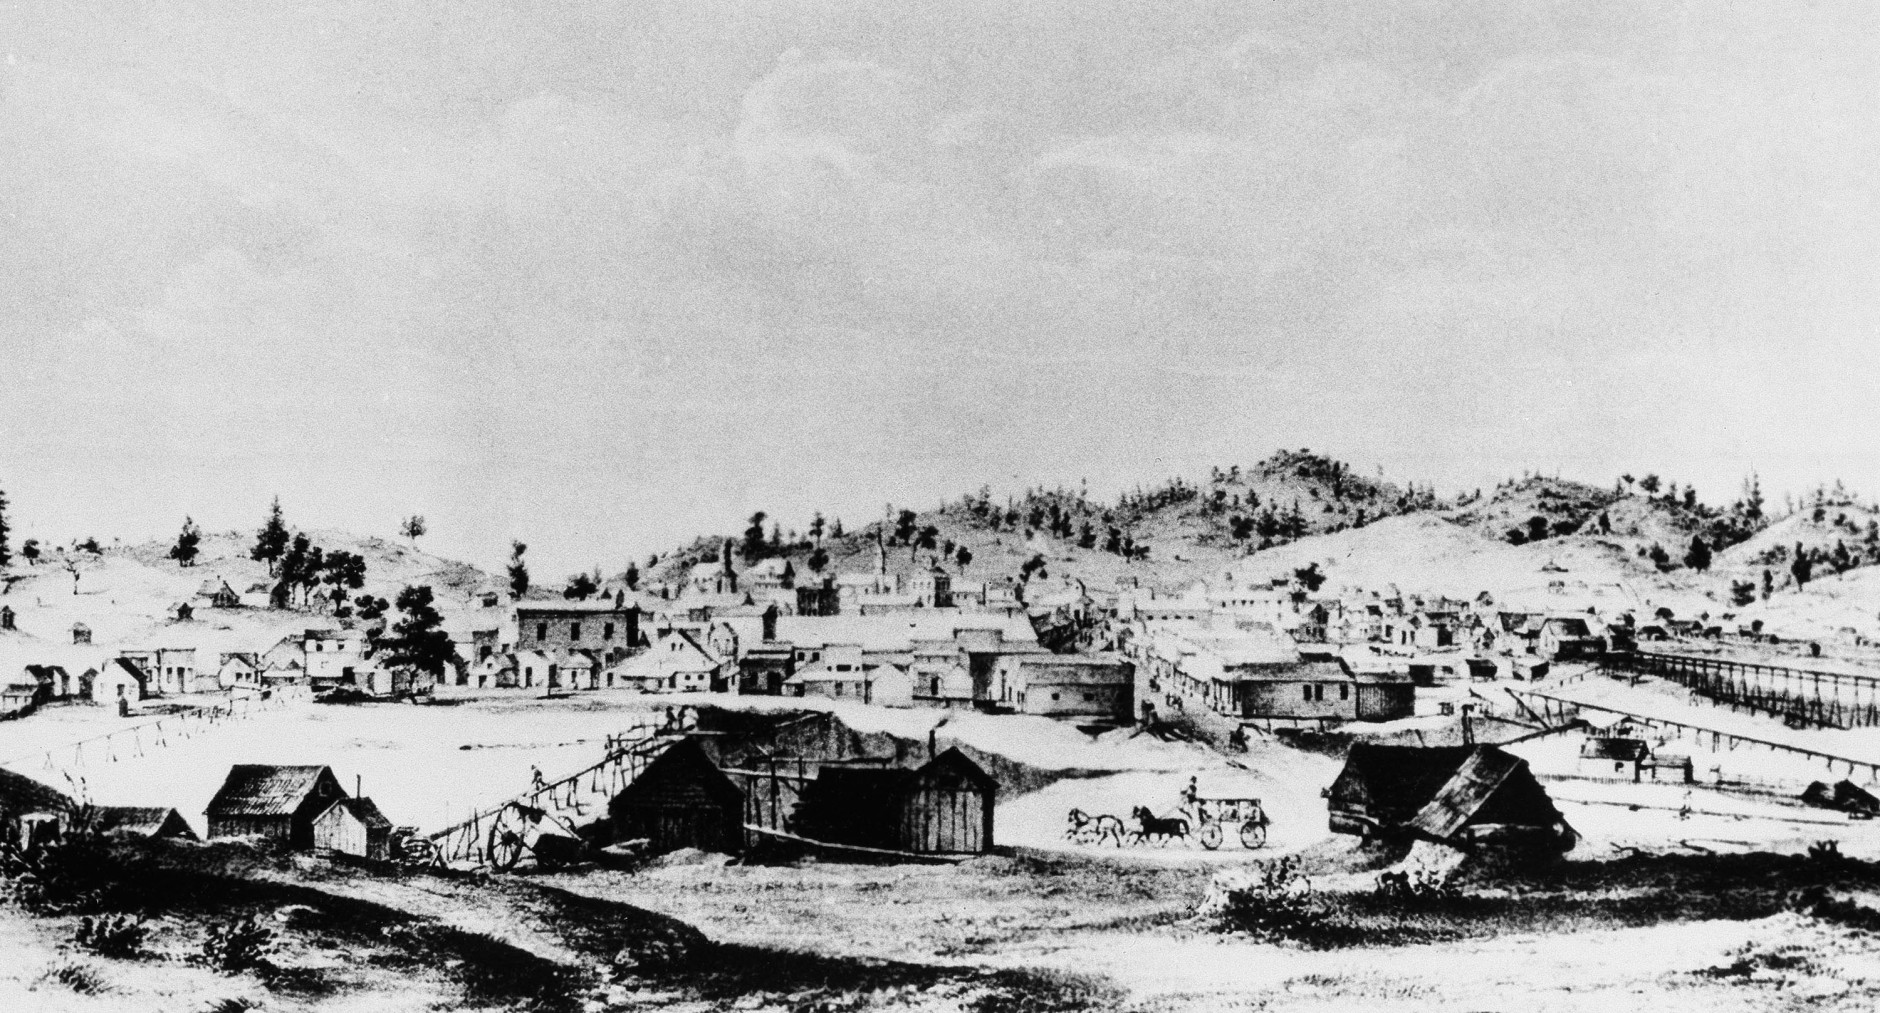 This lithograph shows a boomtown in the South of Californias Mother Lode country, 1856, Columbia, Calif. At that time this probably was the biggest town in California with 25,000 to 45,000 miners and tradesmen and was bidding strongly to be the State capital. Columbia was not far from Sutters Mill in Coloma where James Wilson Marshall, a young wheelwright, discovered the first gold. Gold was first discovered, Jan. 24, 1848. (AP Photo)